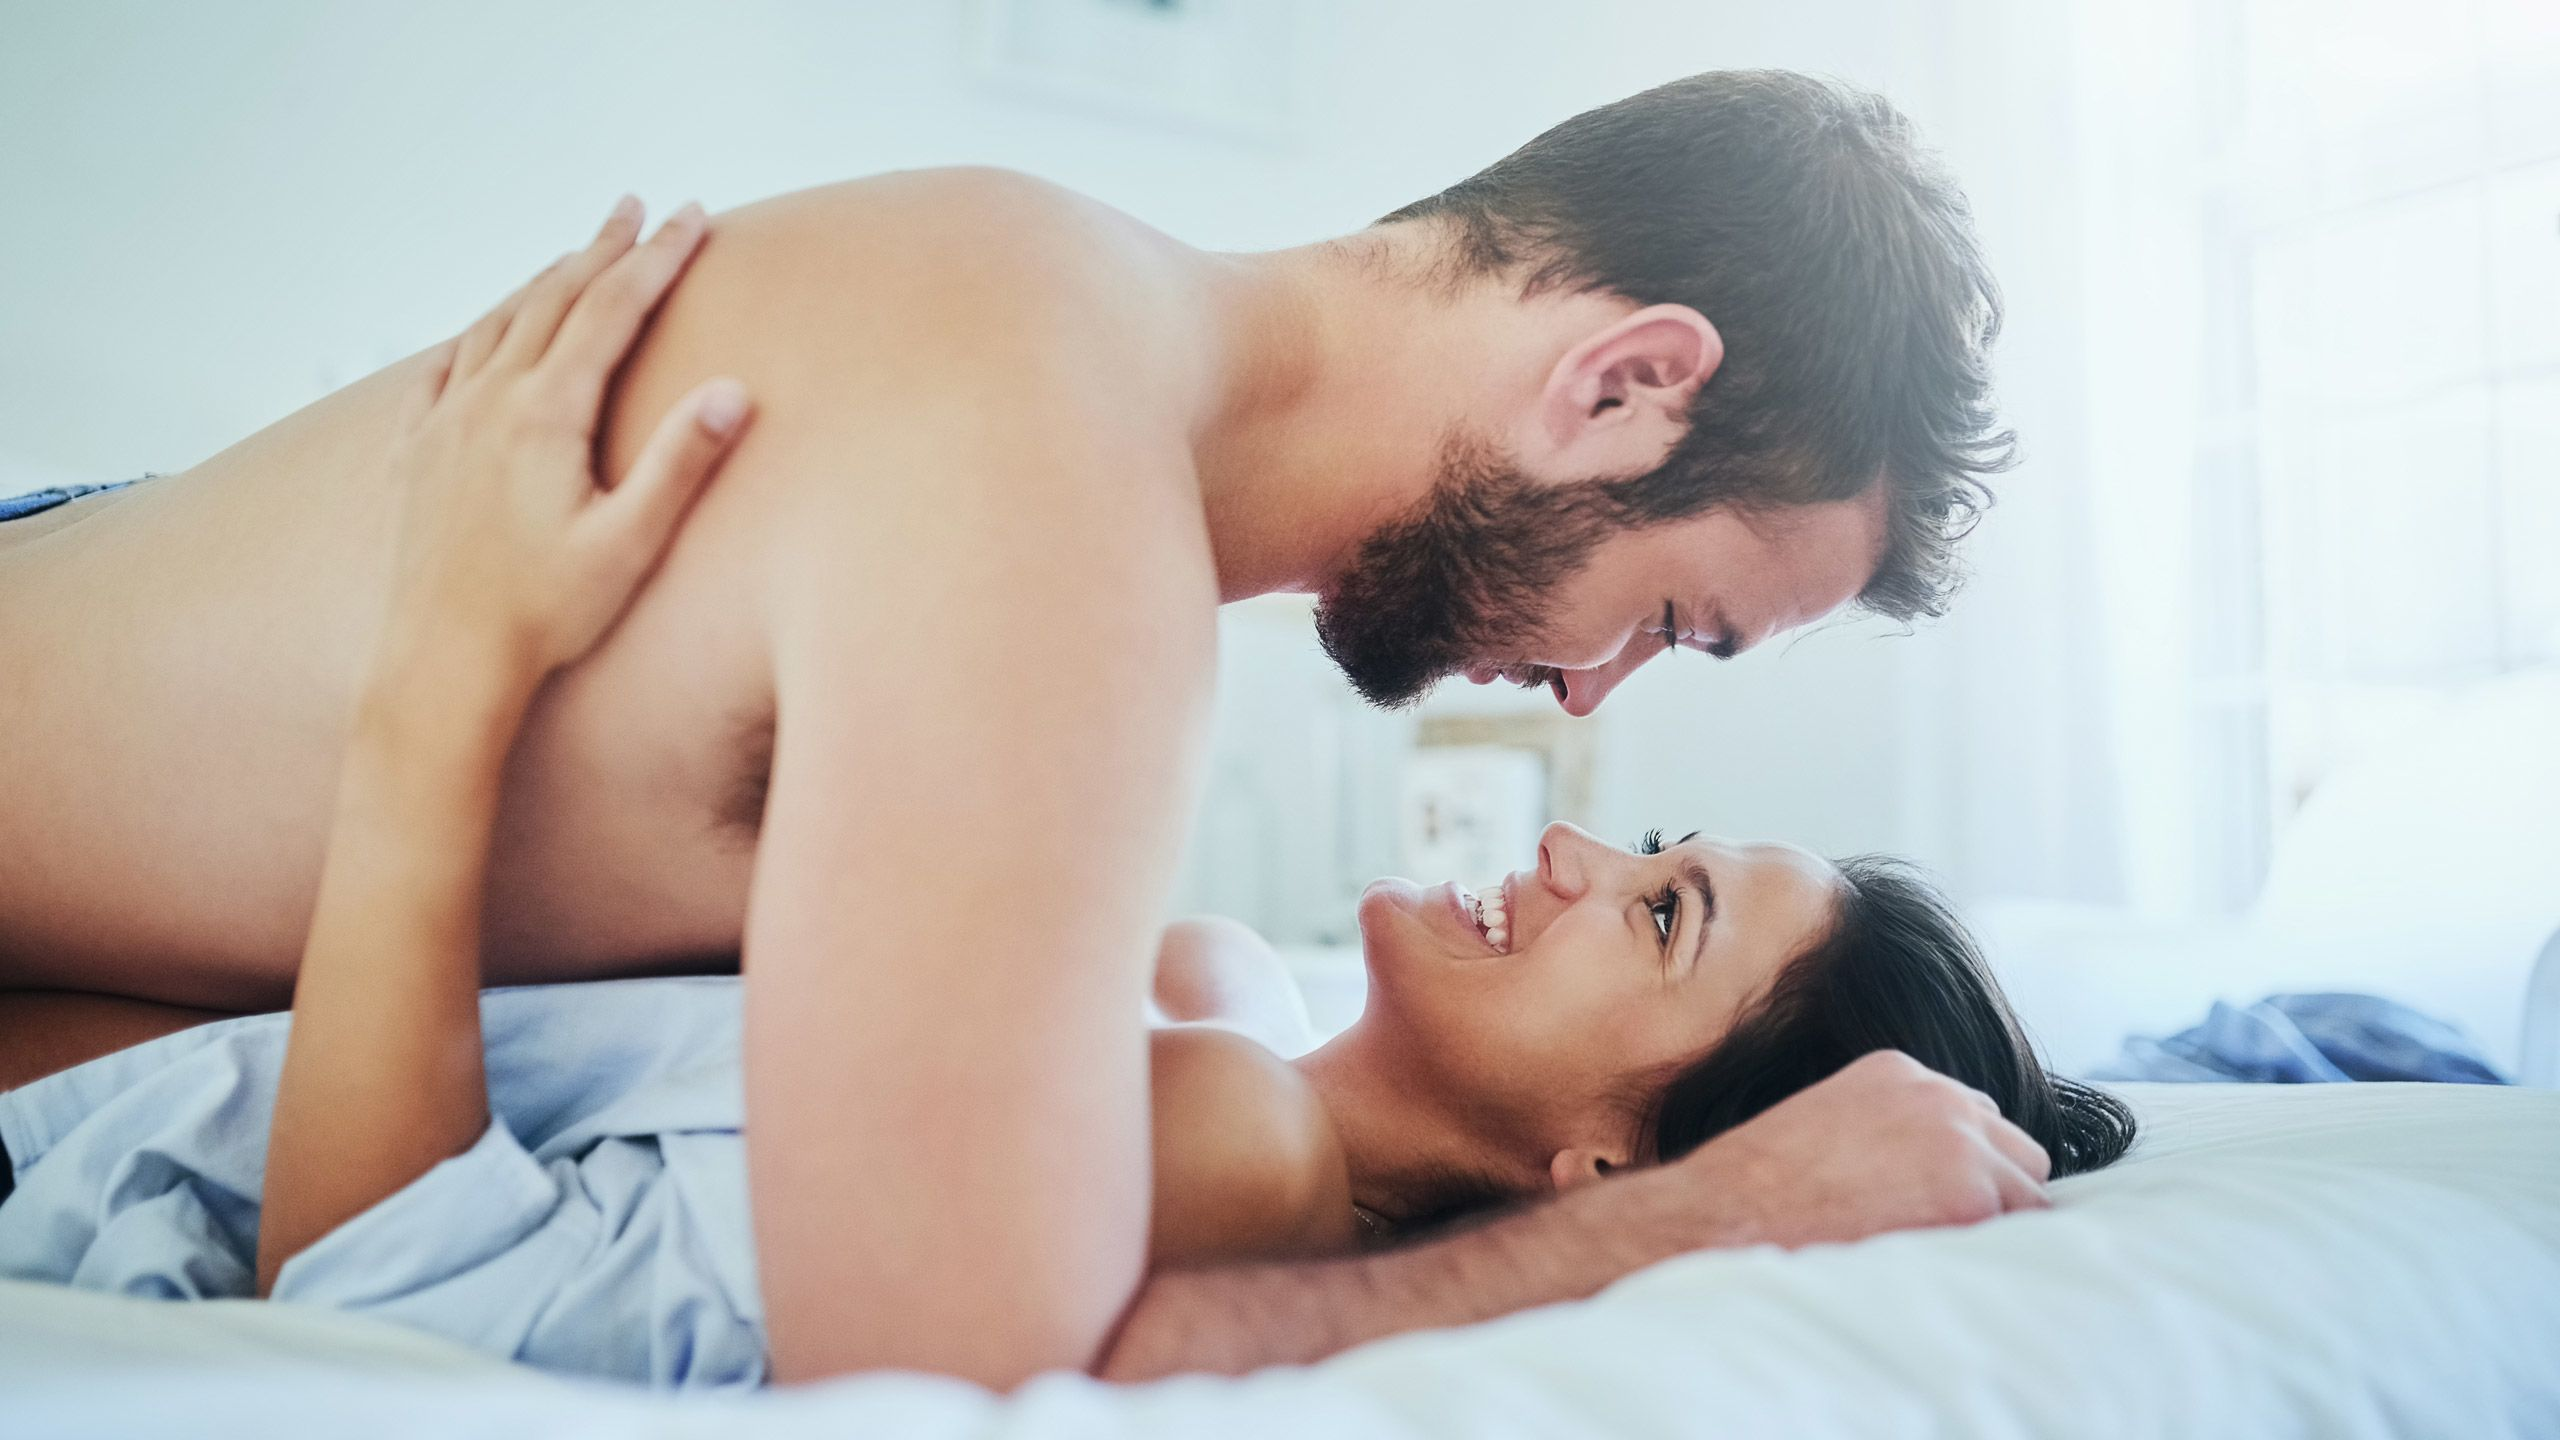 6 Things You Should Never Do Before and After Sex